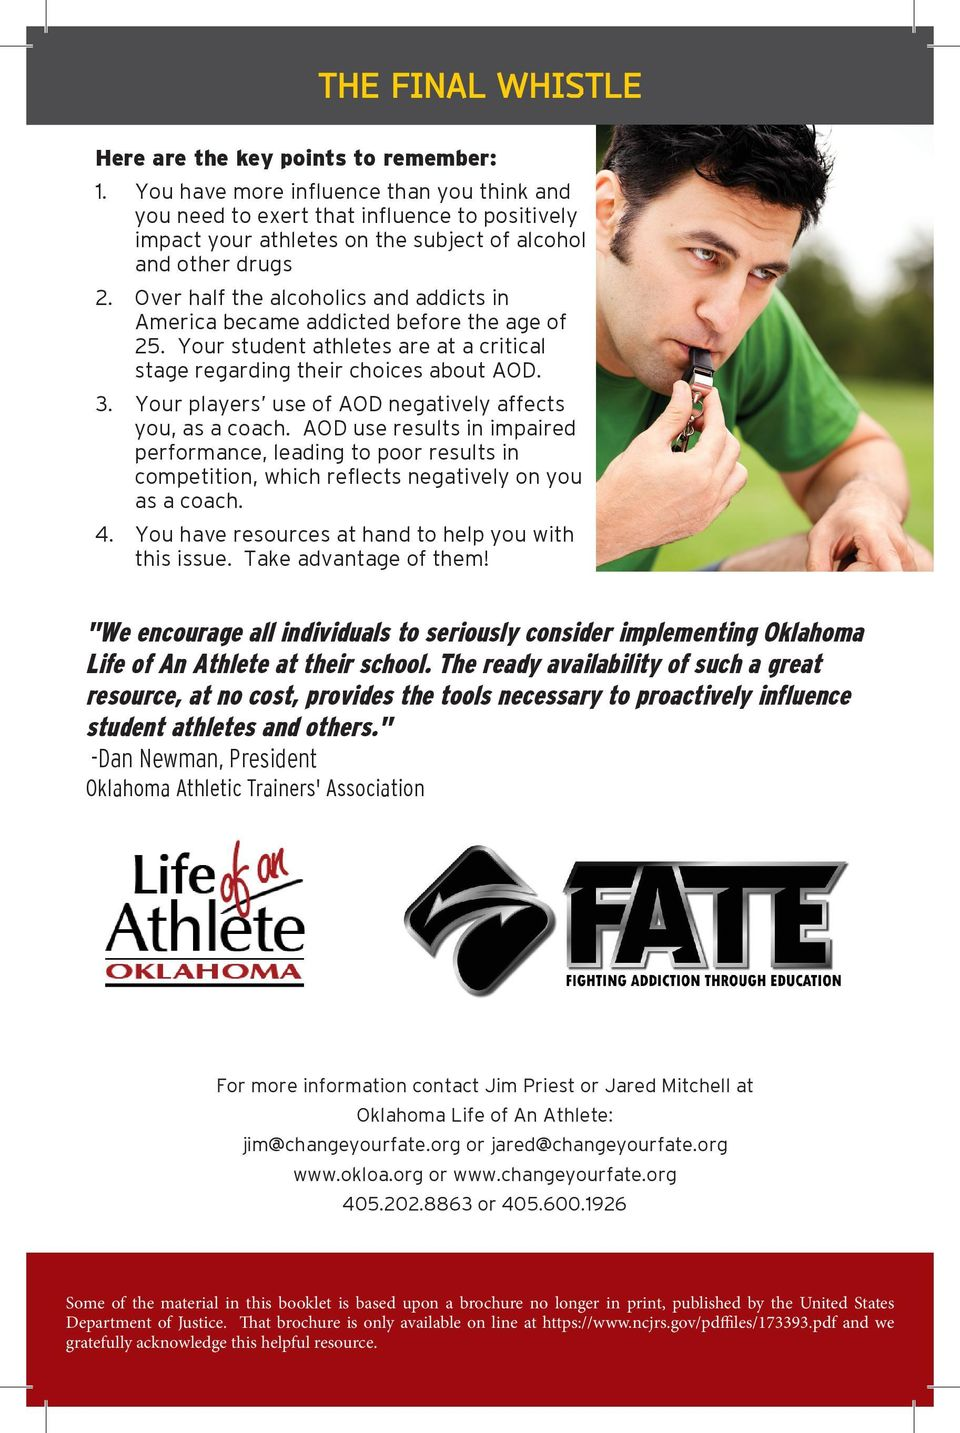 Over half the alcoholics and addicts in America became addicted before the age of 25. Your student athletes are at a critical stage regarding their choices about AOD. 3.